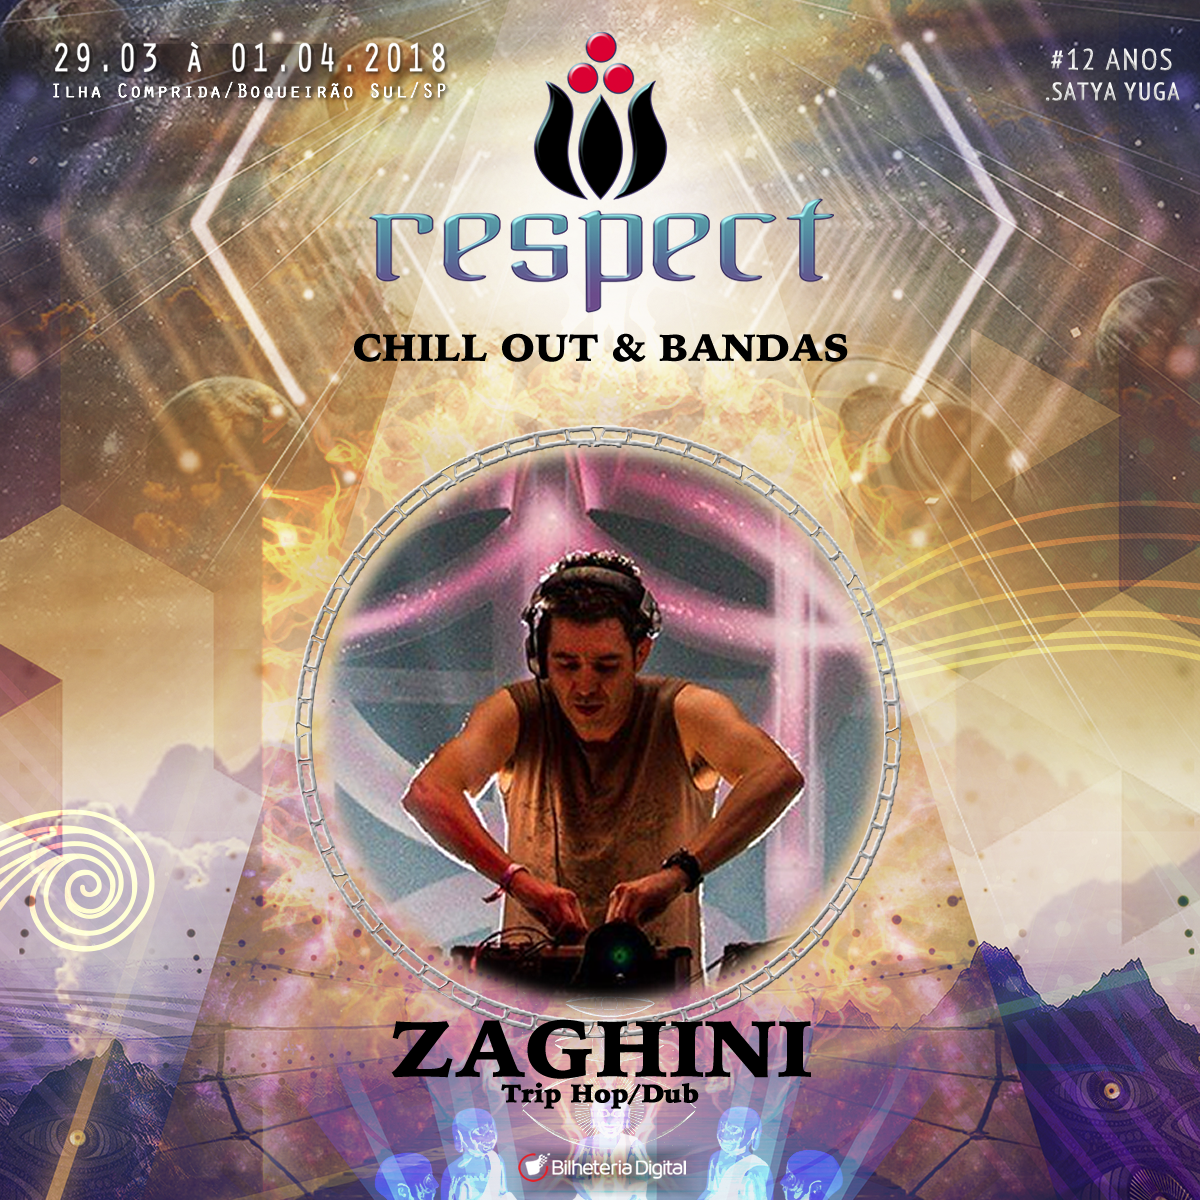 Zaghini @ Artista Confirmado Respect Festival 2018